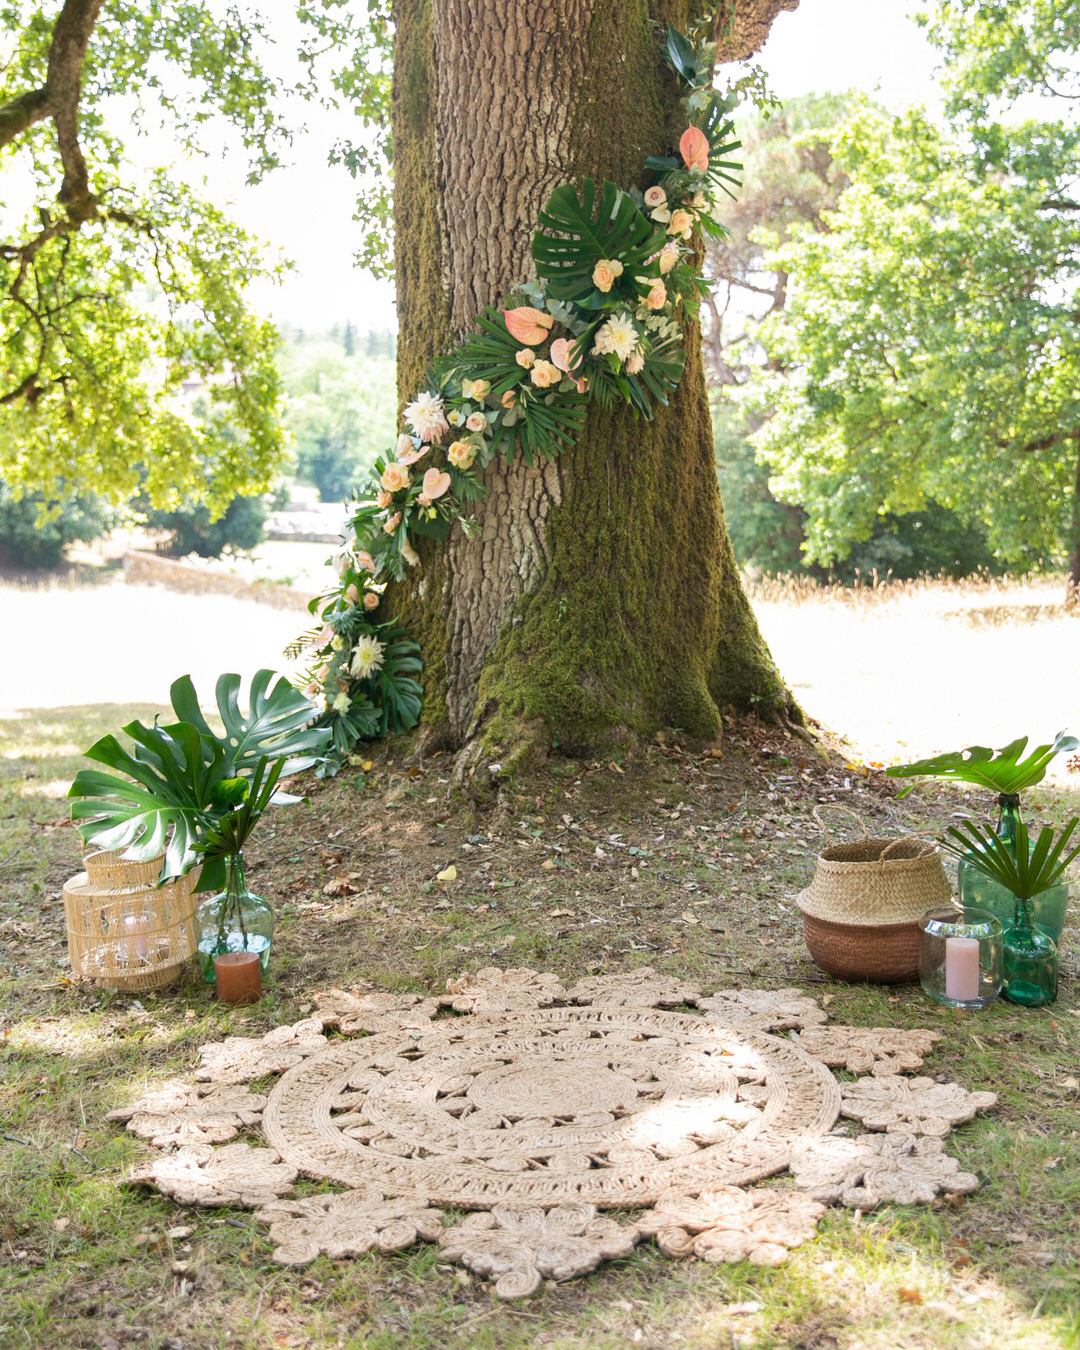 jen tim wedding ceremony tree wrapped in tropical garland